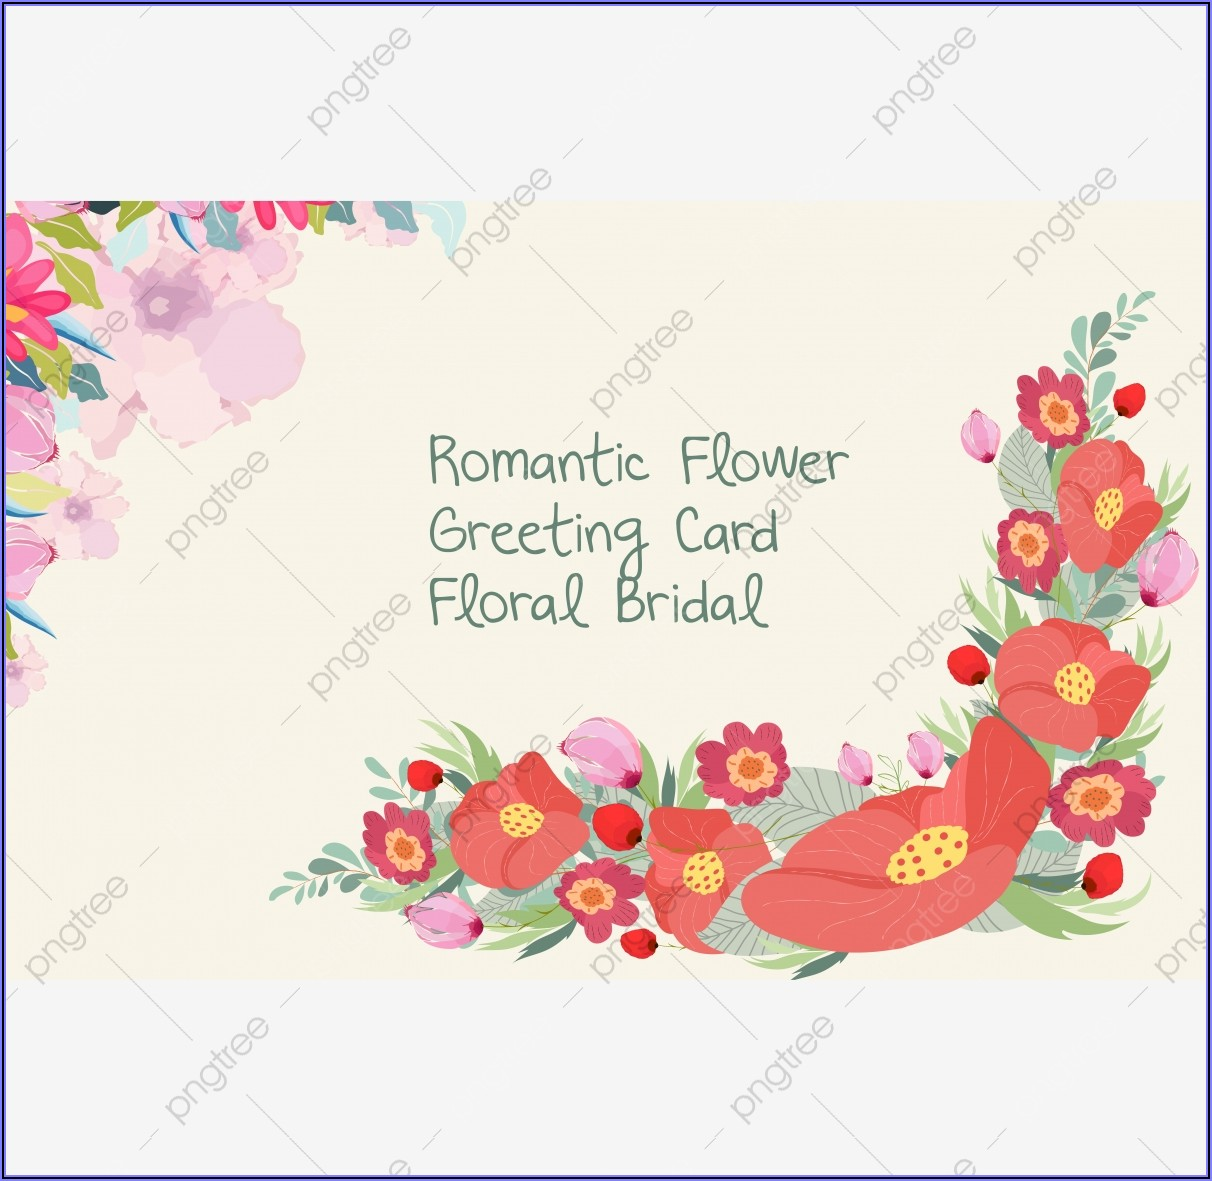 Background Wedding Invitation Card Templates